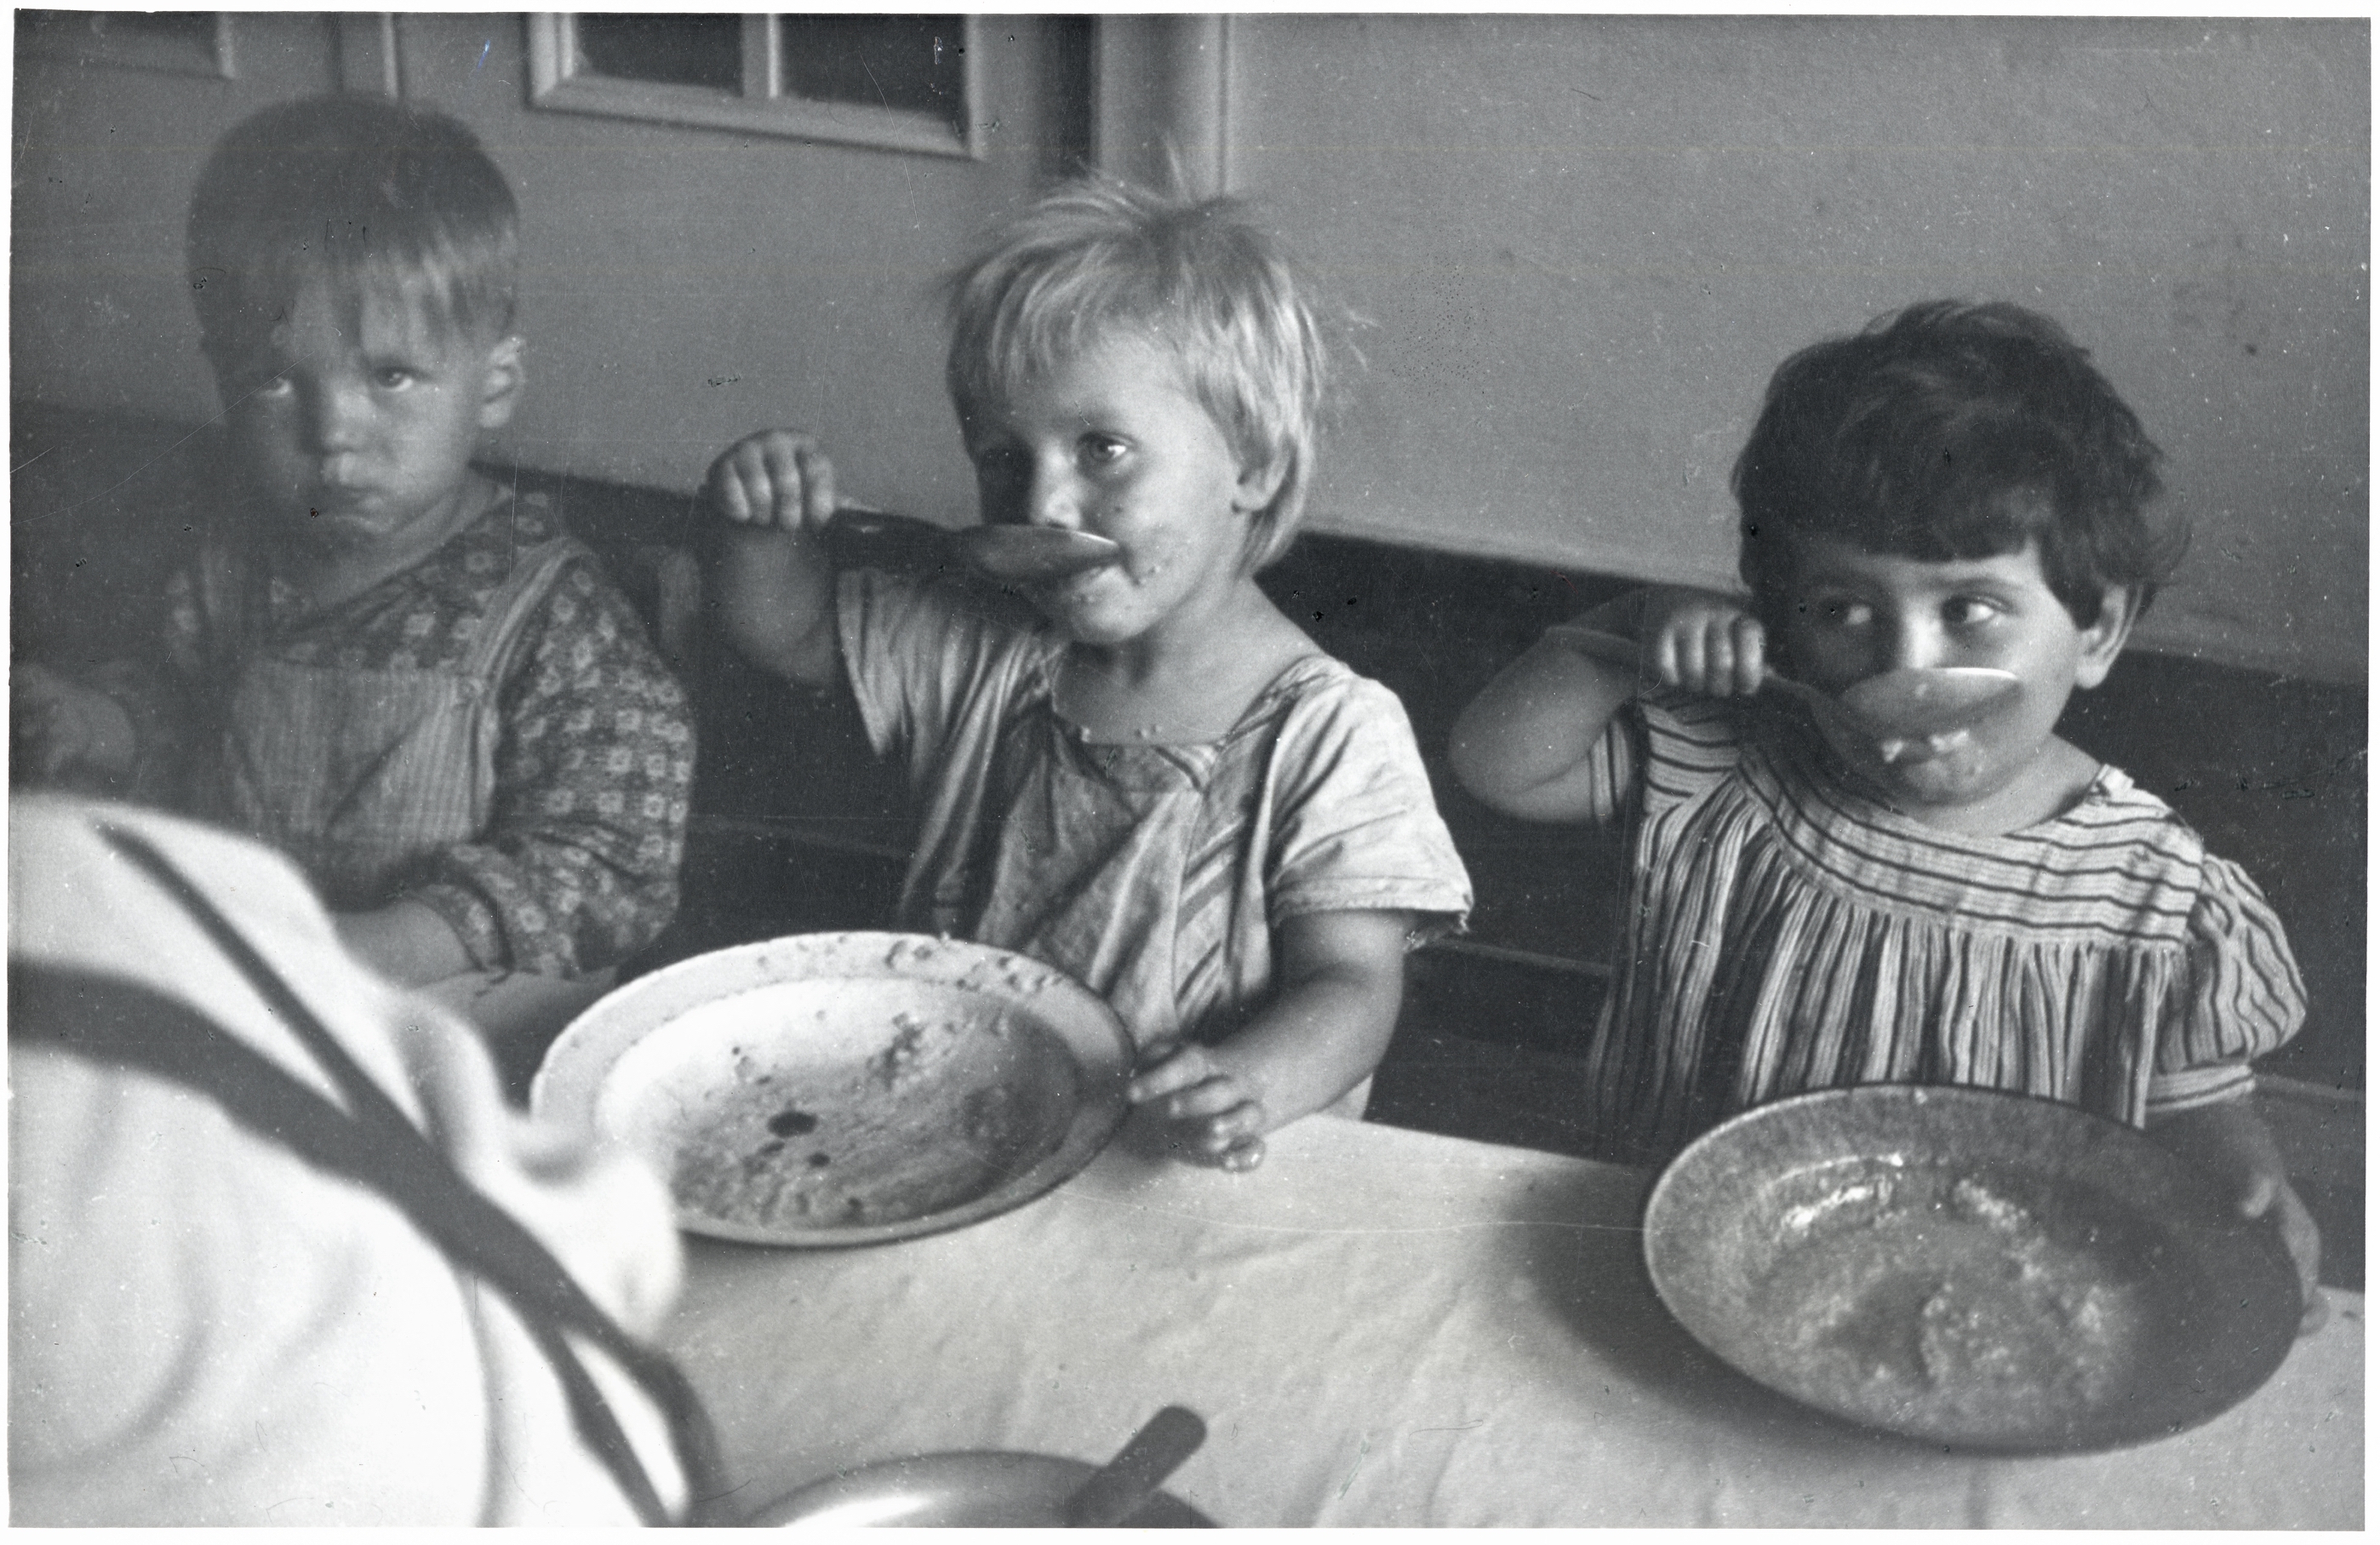 Children eating lunch at a day care center in Sczeczyn; the centers were designed to care for children whose mothers had to work. Sczeczyn, Poland, 1948.